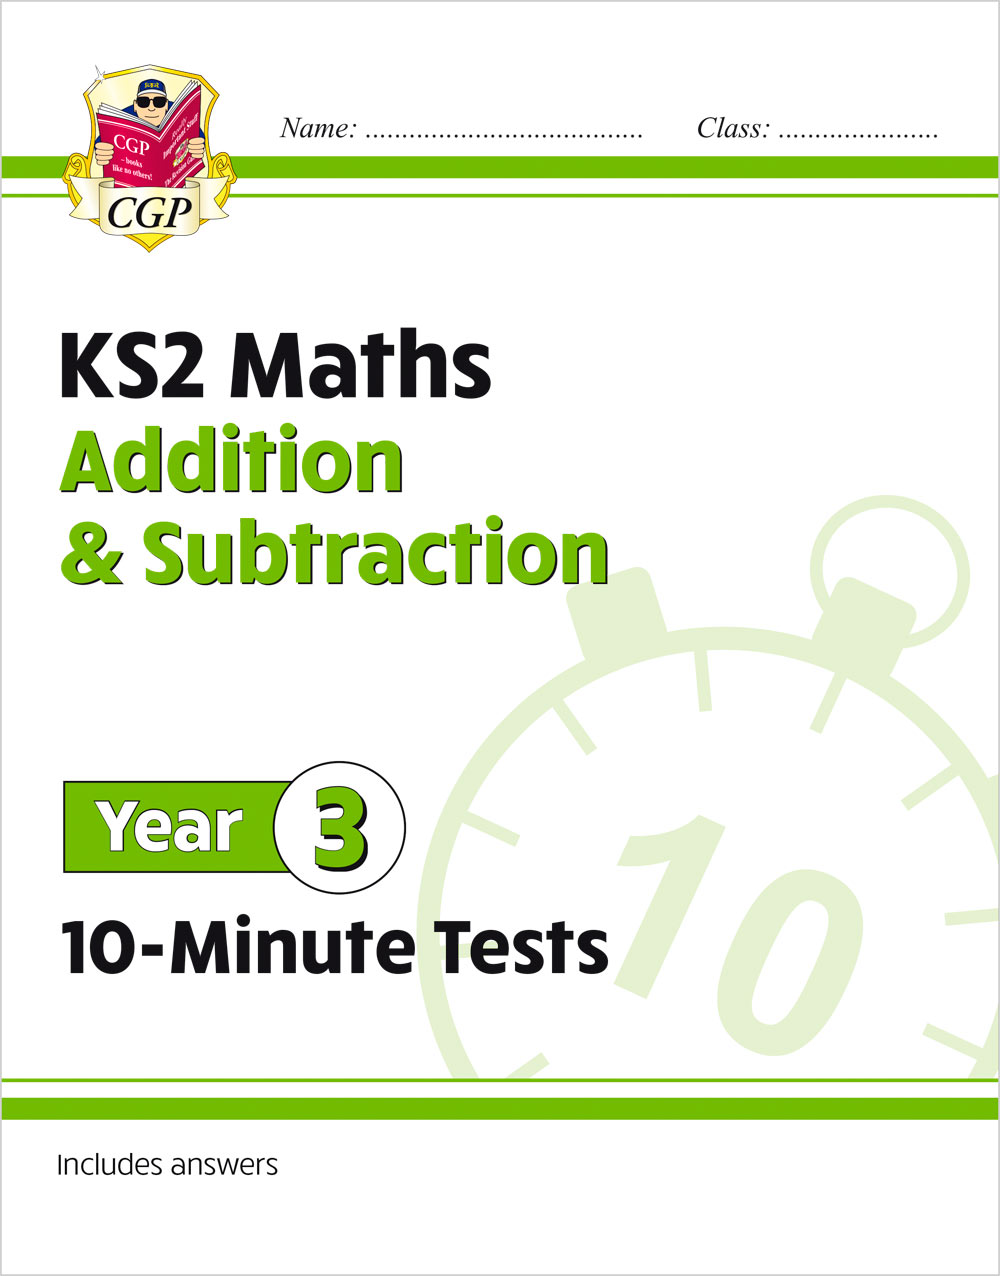 M3ASXP21 - New KS2 Maths 10-Minute Tests: Addition & Subtraction - Year 3